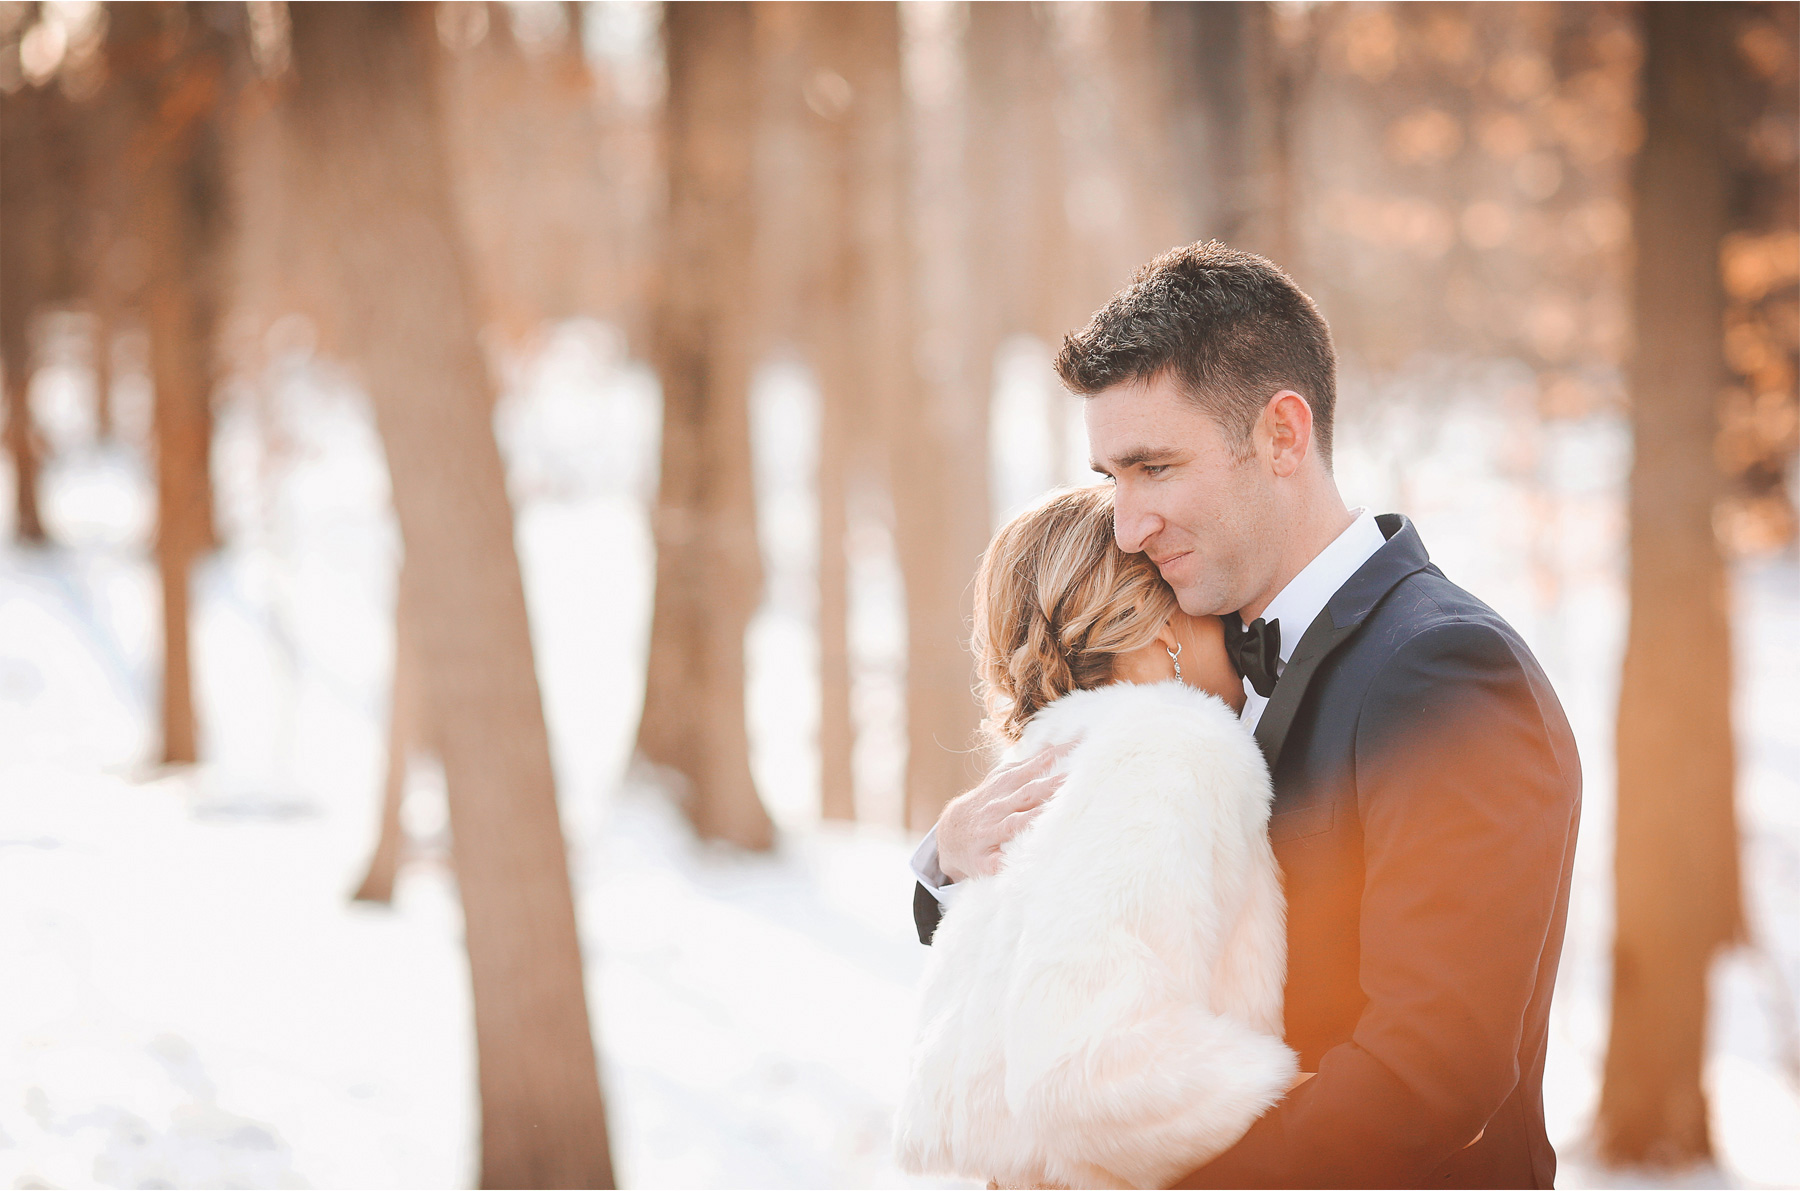 08-Watchung-New-Jersey-Wedding-Photographer-by-Andrew-Vick-Photography-Winter-Saint-Marys-Chuch-Stony-Hill-First-Meeting-Look-Bride-Groom-Fur-Coat-Embrace-Vintage-Alexia-and-Justin.jpg